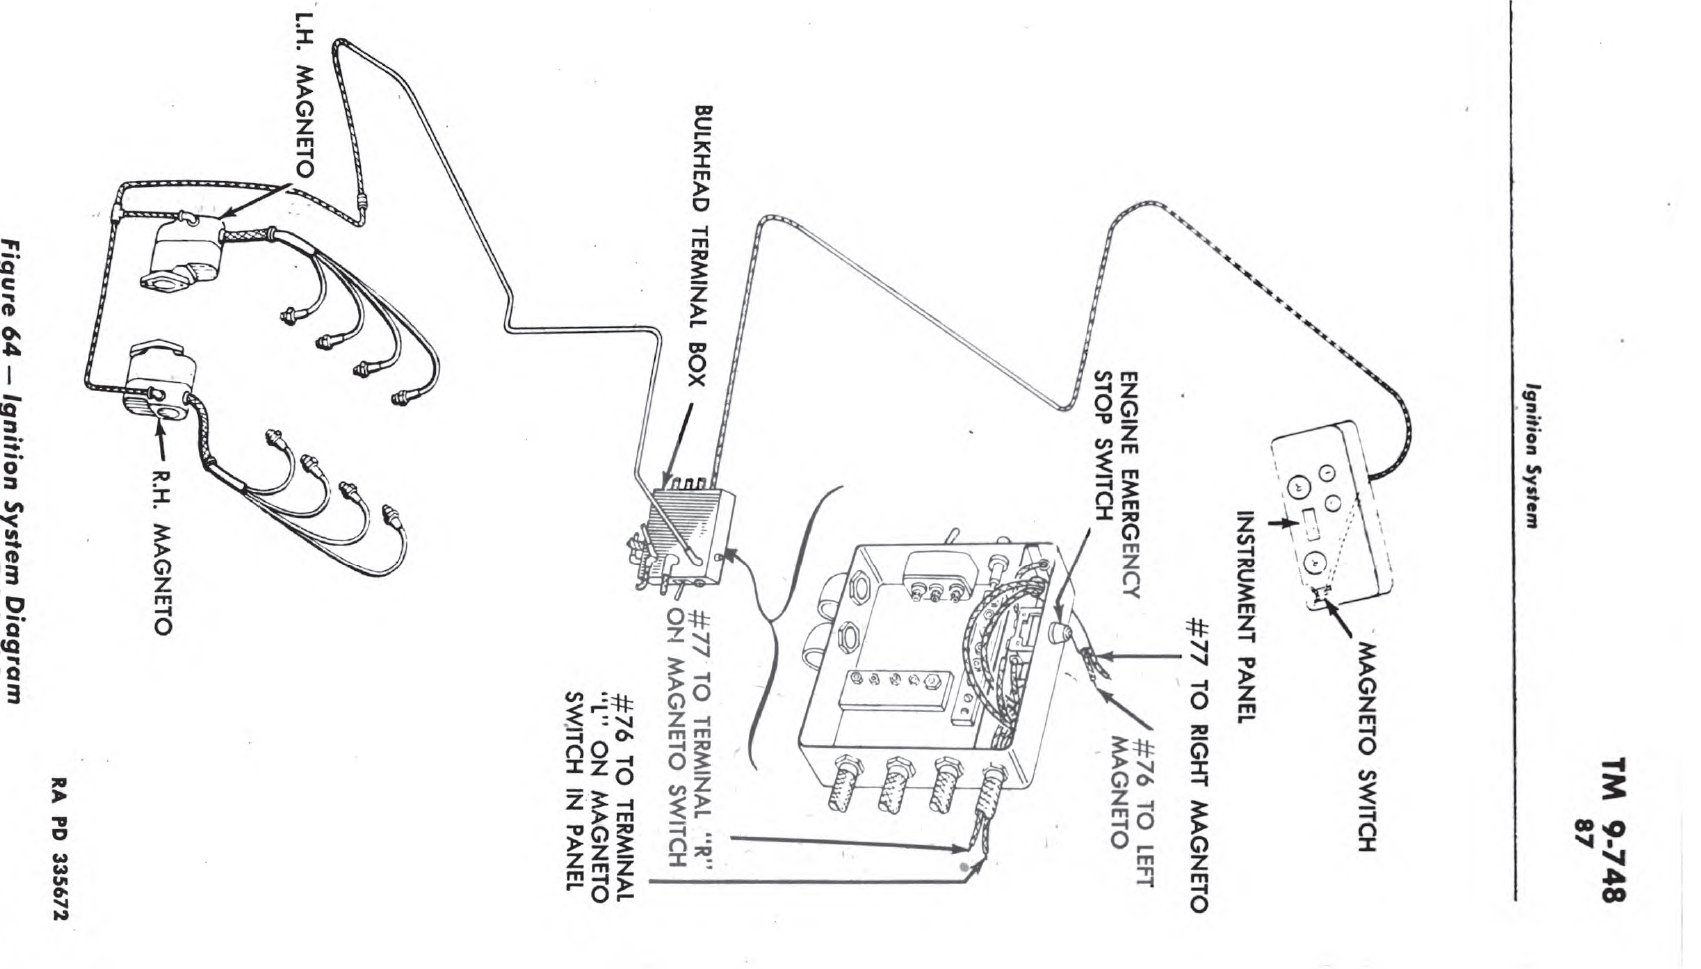 1982 ford l8000 wiring diagram ford choke wiring